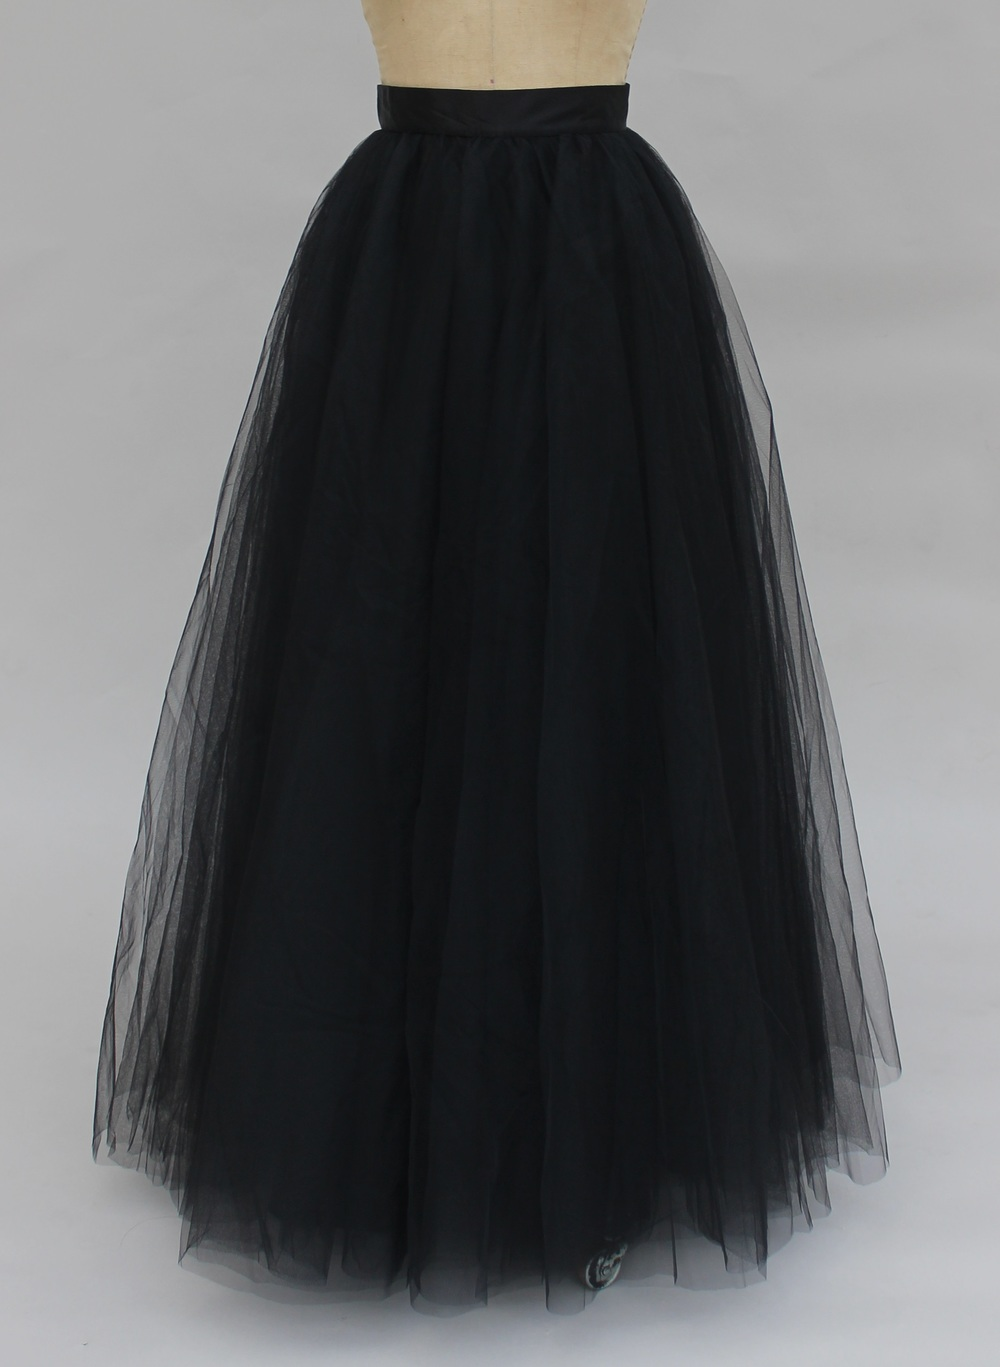 This skirt was everything I needed in a tulle skirt! It was full without being too puffy and was perfect for a photo shoot I had just recently. I am now HOOKED on tulle skirts and will probably buy other colors!